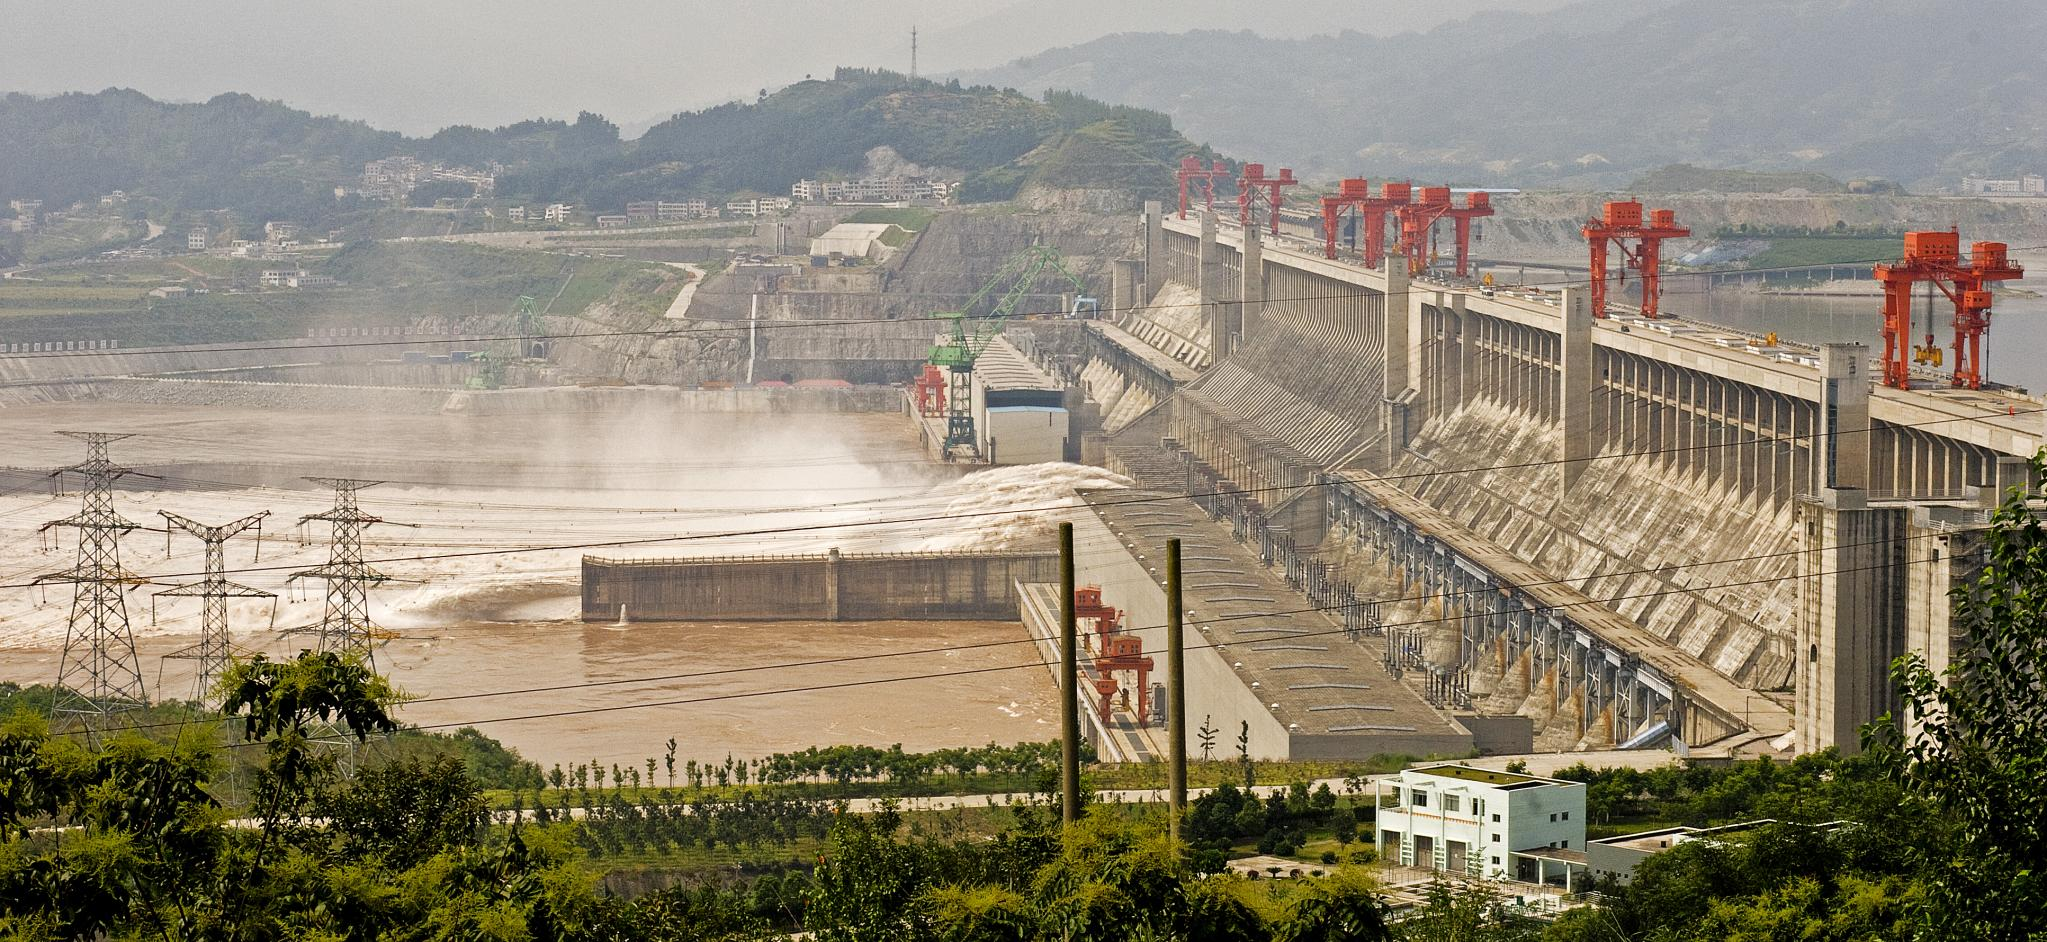 three gorges dam in chin essay What a controversial dam construction site in central china published collection of interviews and essays critical of the three gorges dam project sent.